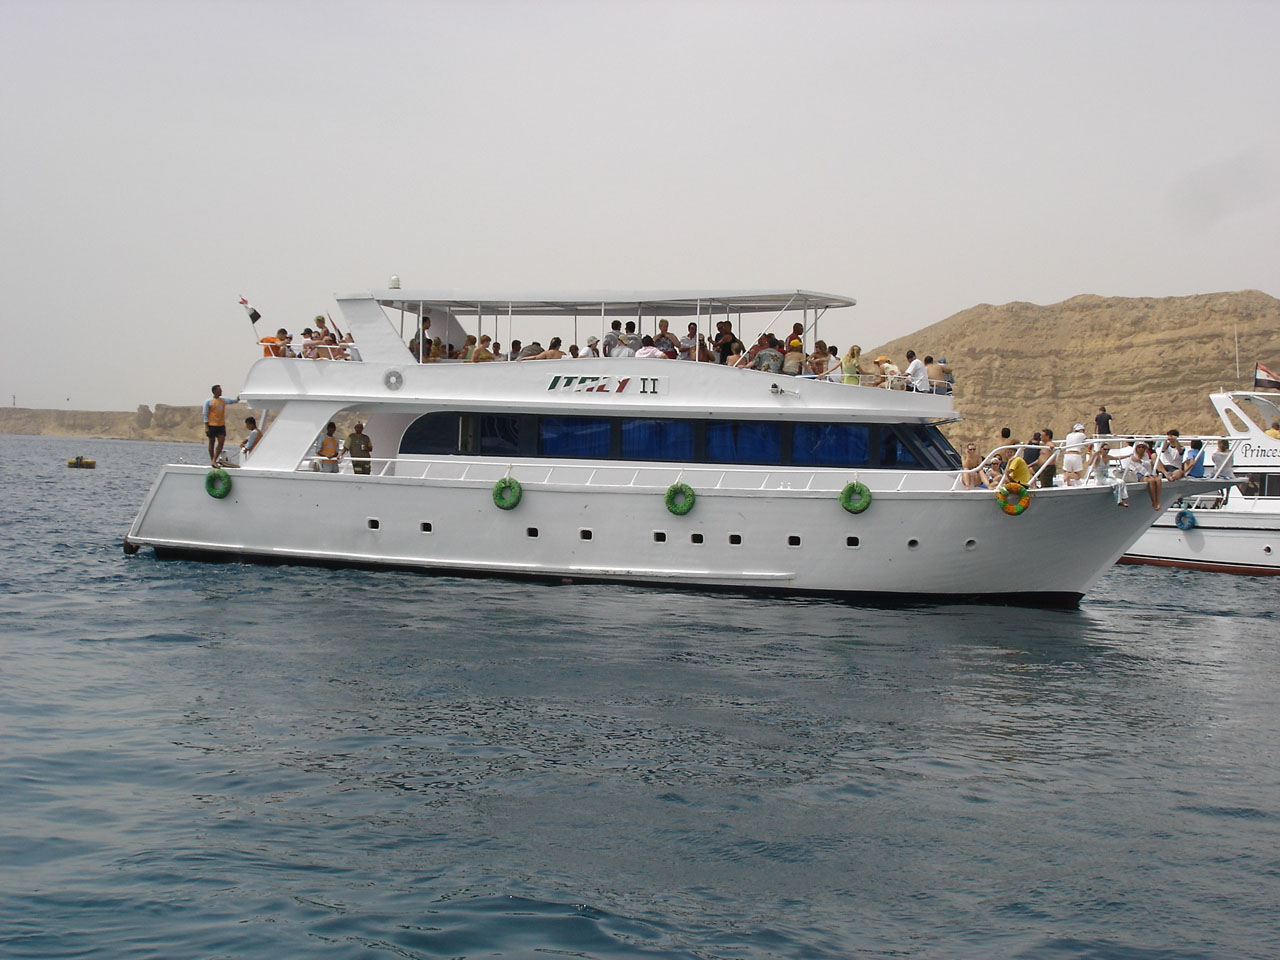 Gite in barca da Sharm el Sheikh all'isola di Tiran